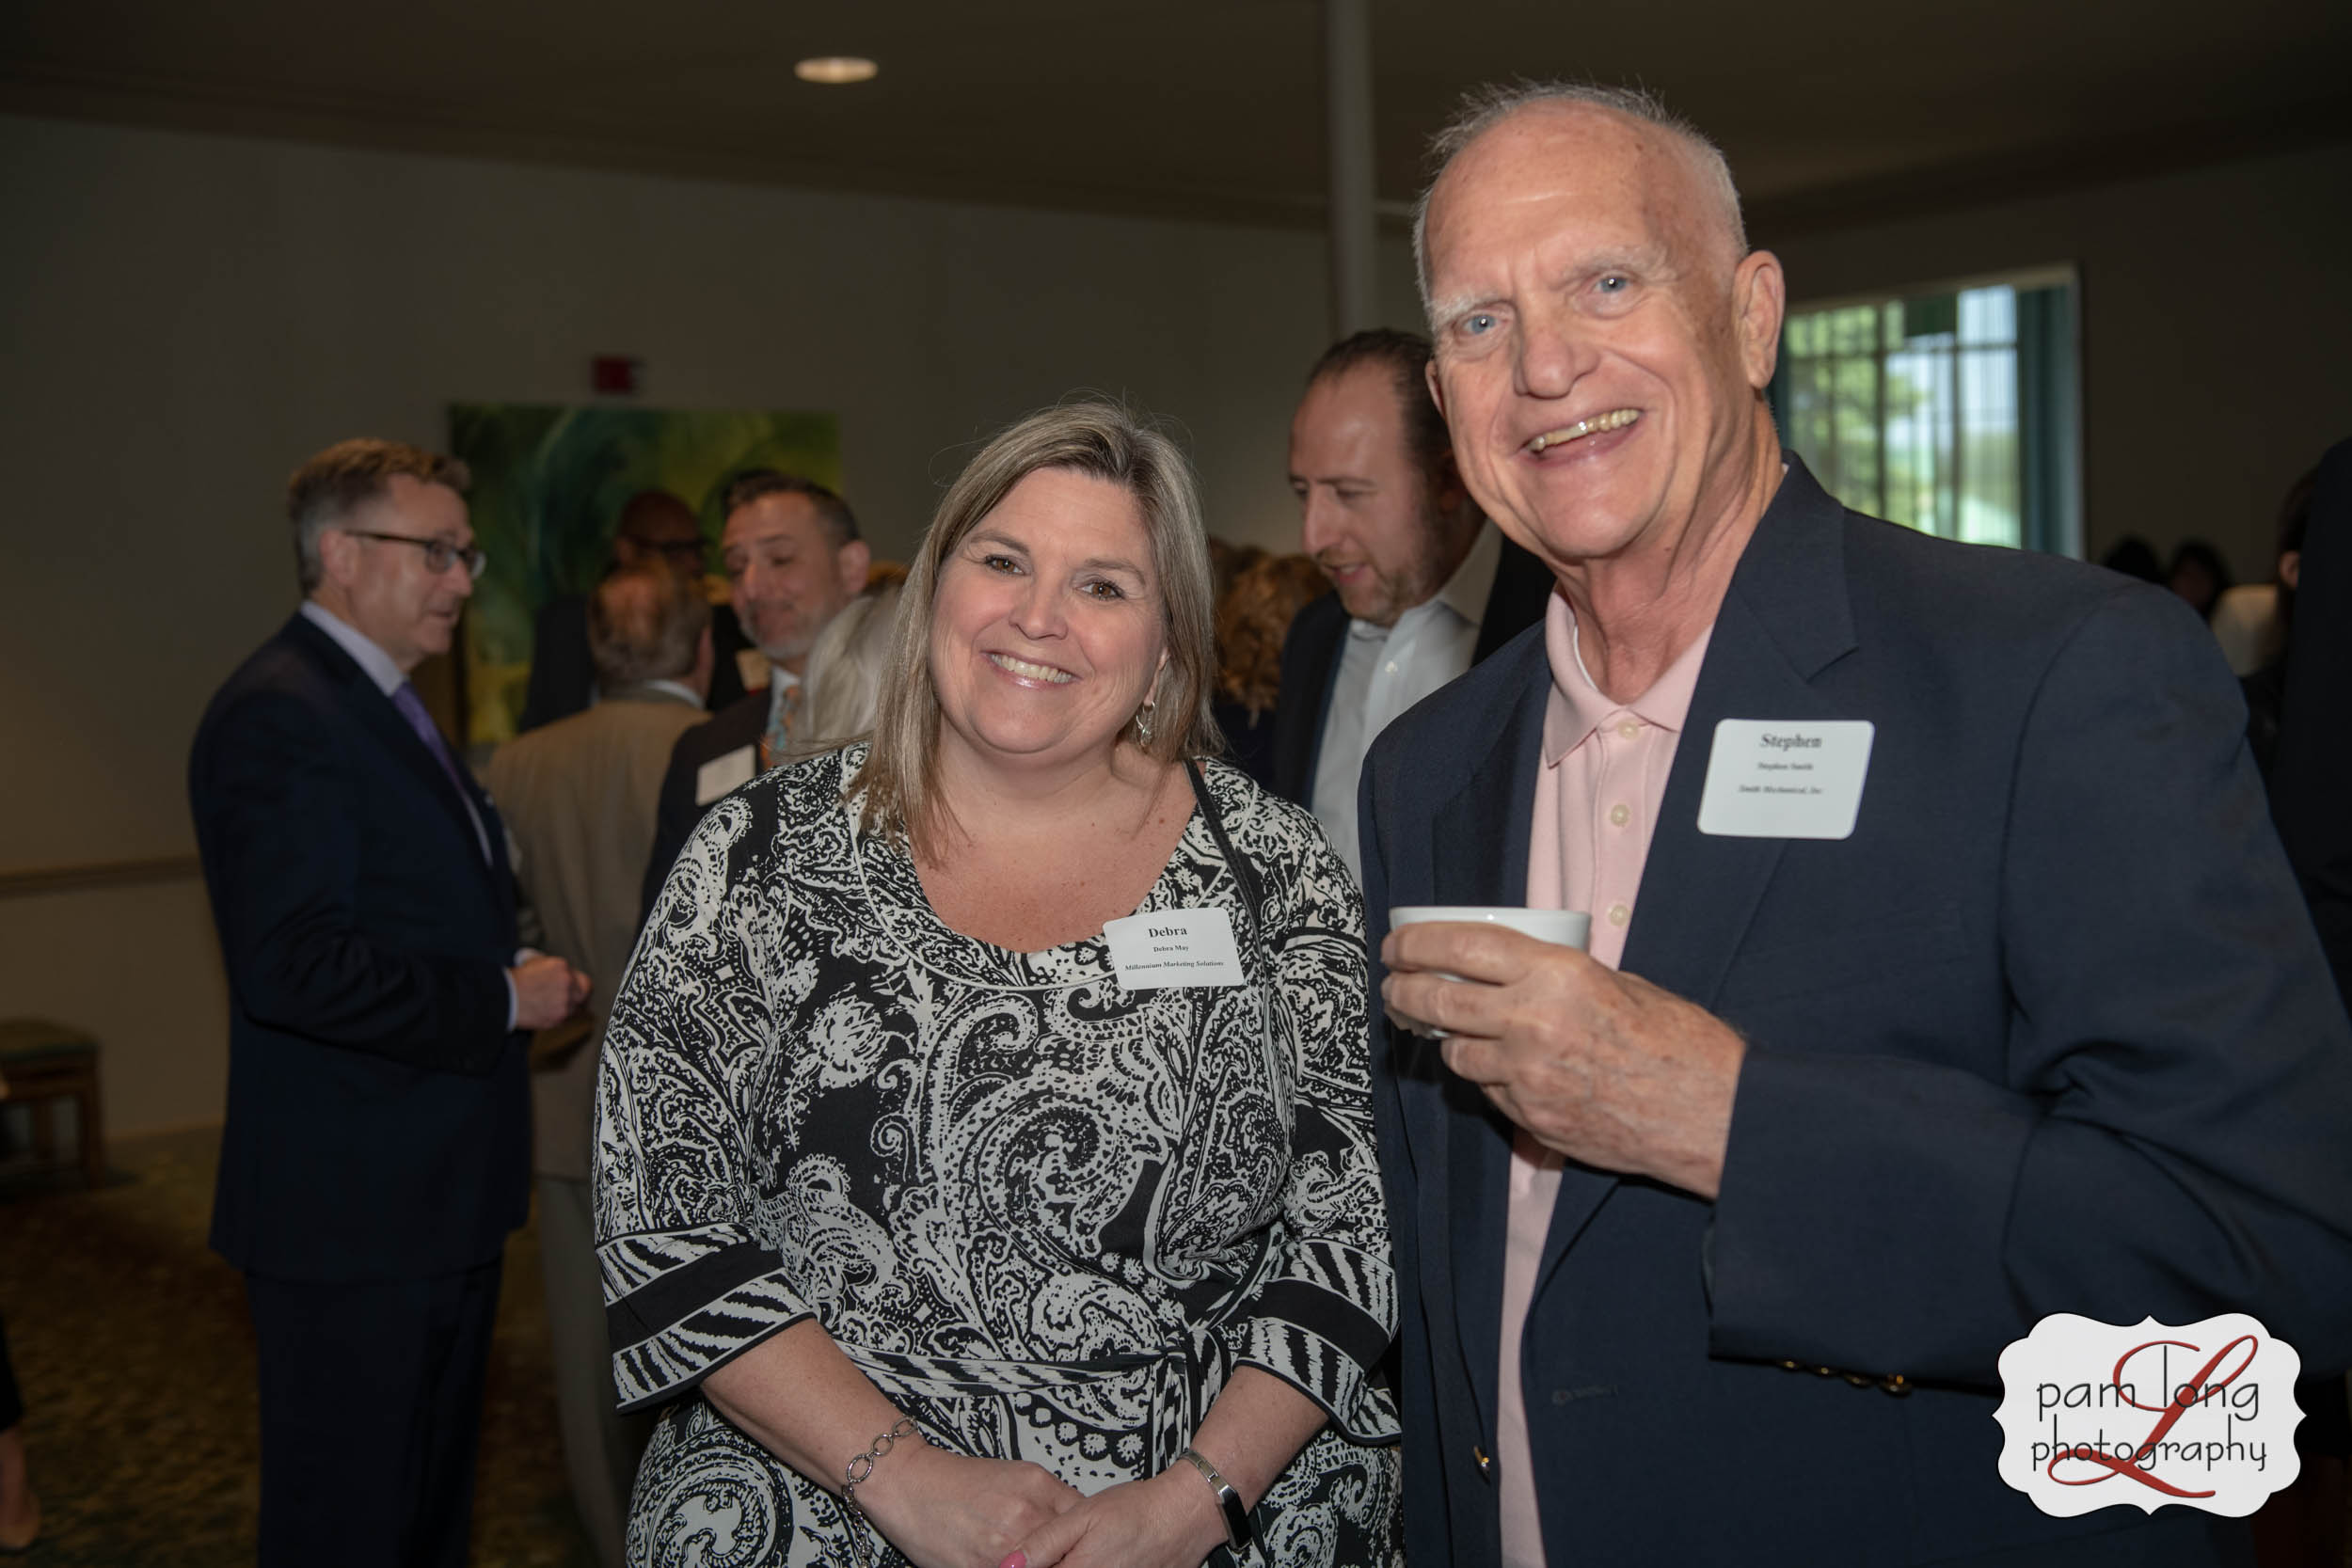 Pam-Long-Photography-HoCo-Chamber-50th-2019-5